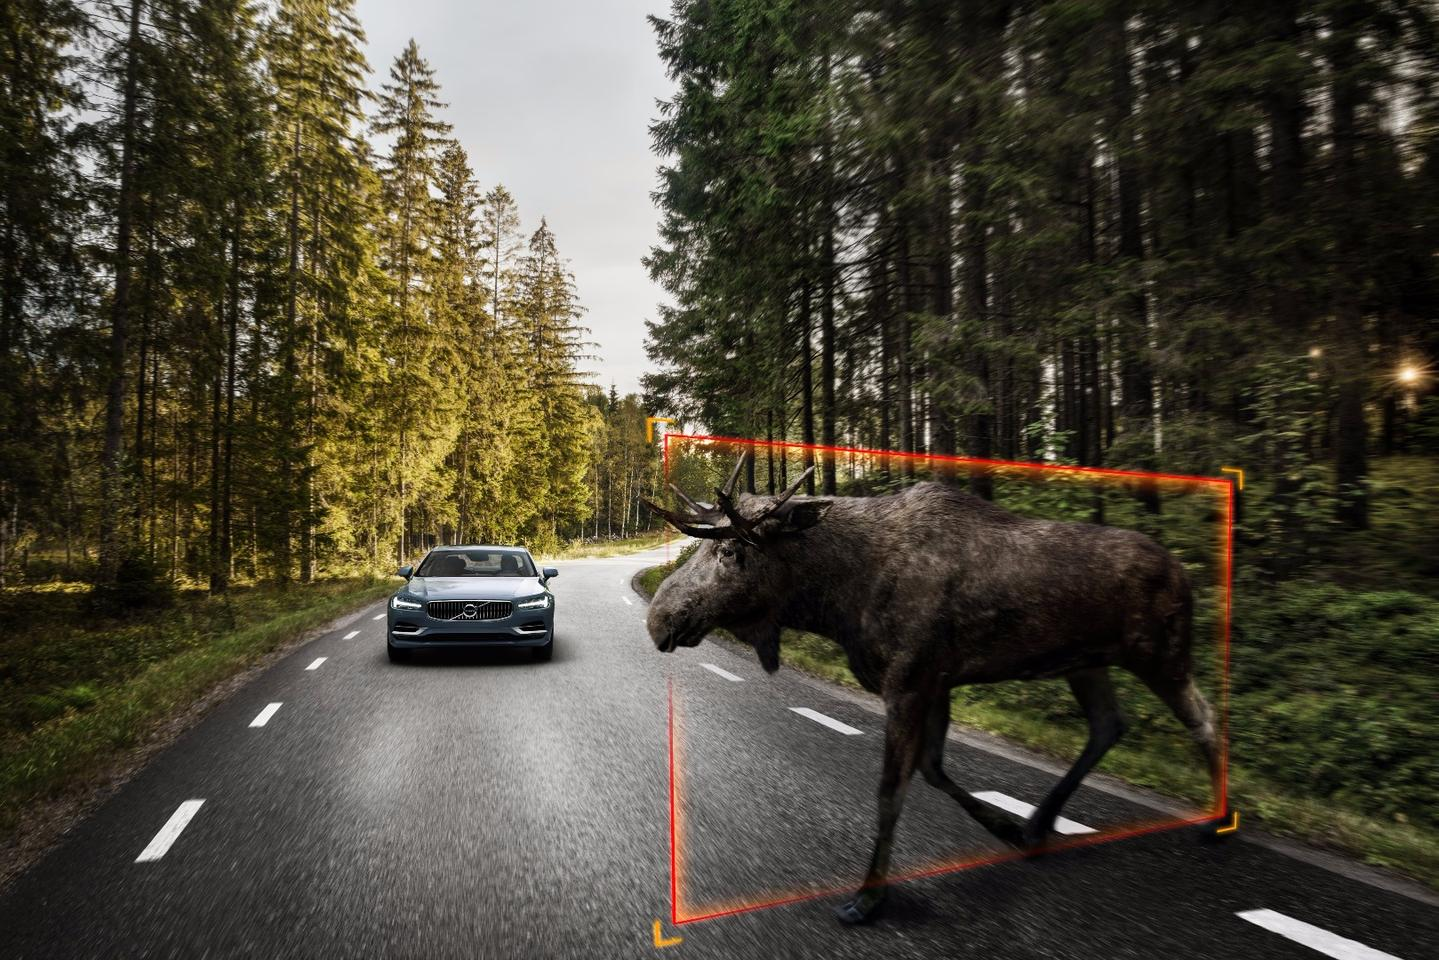 Thestandard radar/camera-based detectionsystem can detect large animals, warn the driver and self-brake